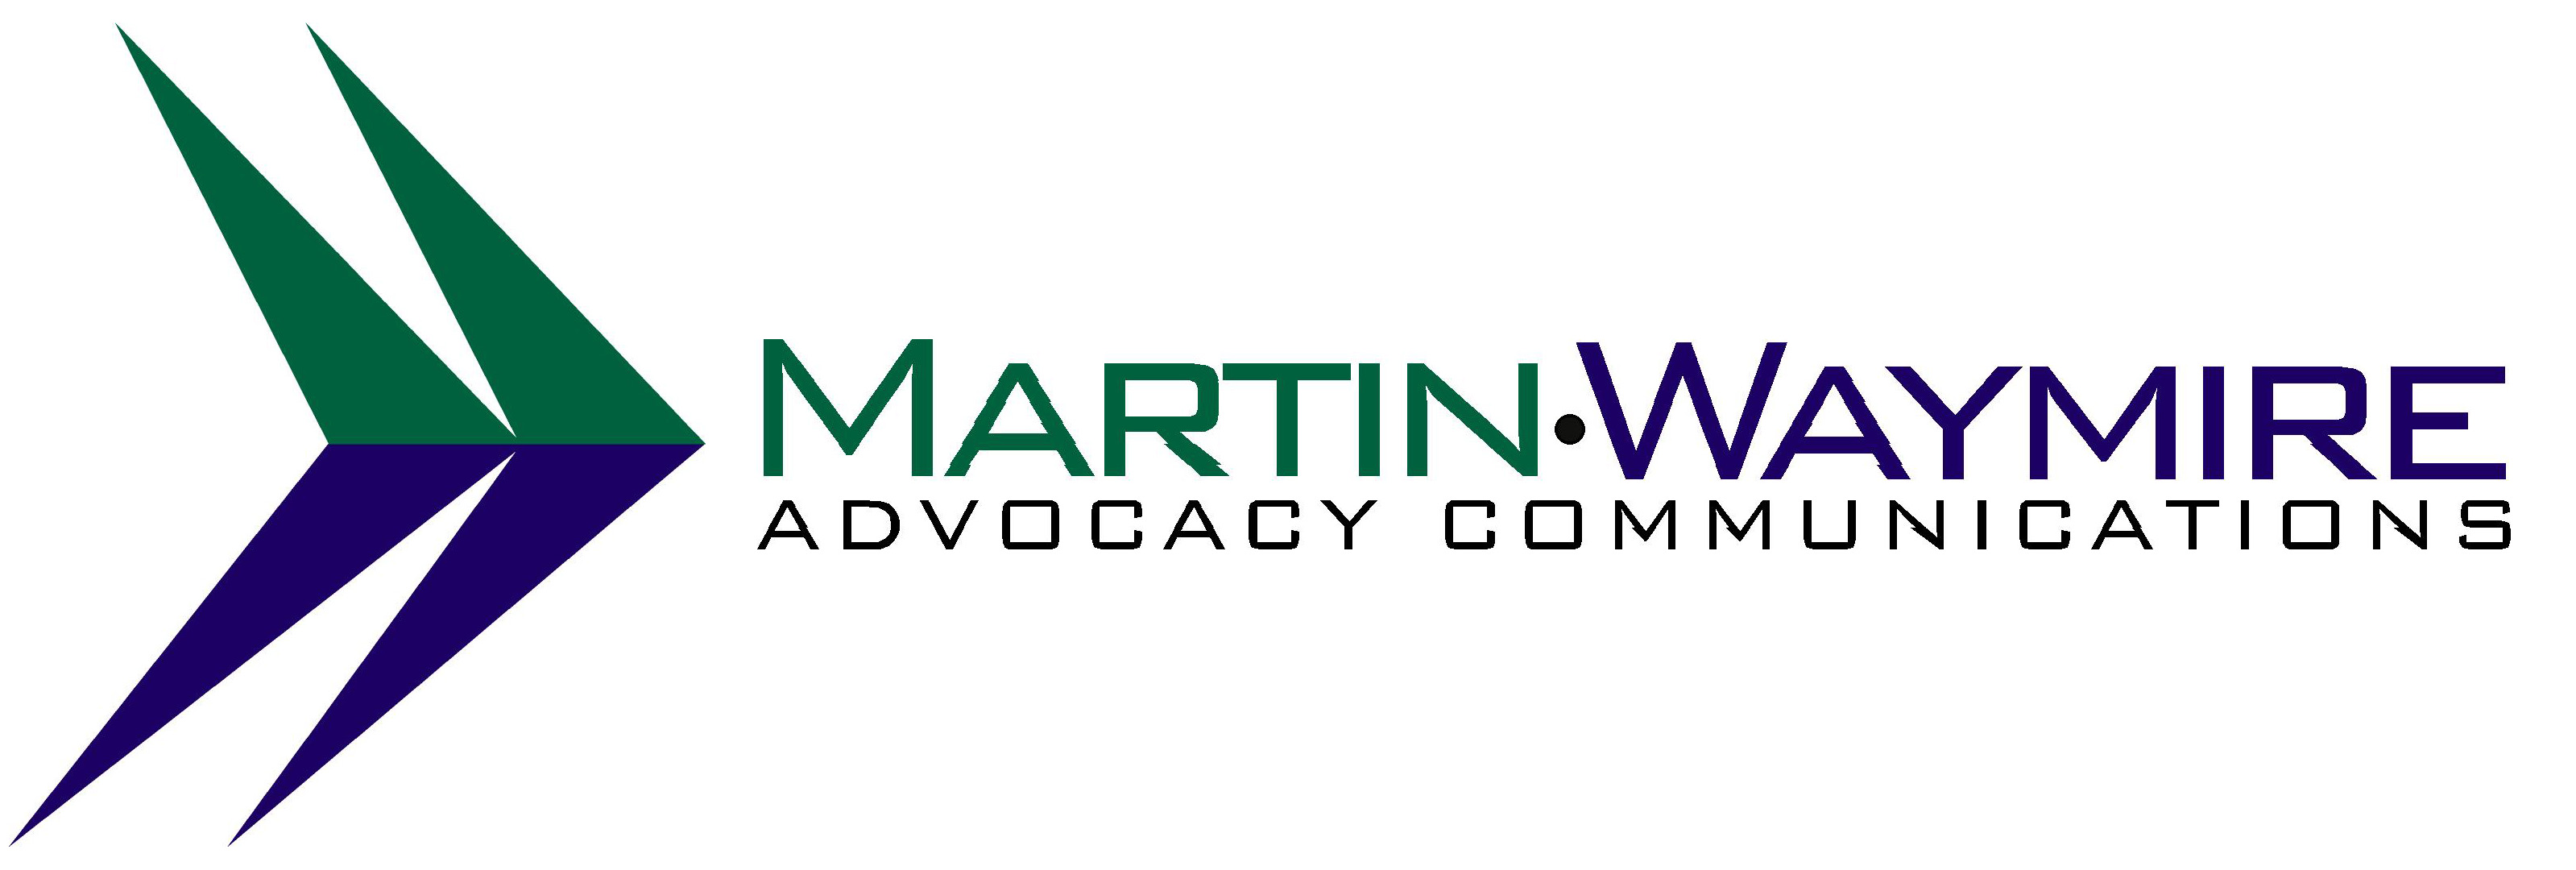 Martin Waymire Advocacy Communications